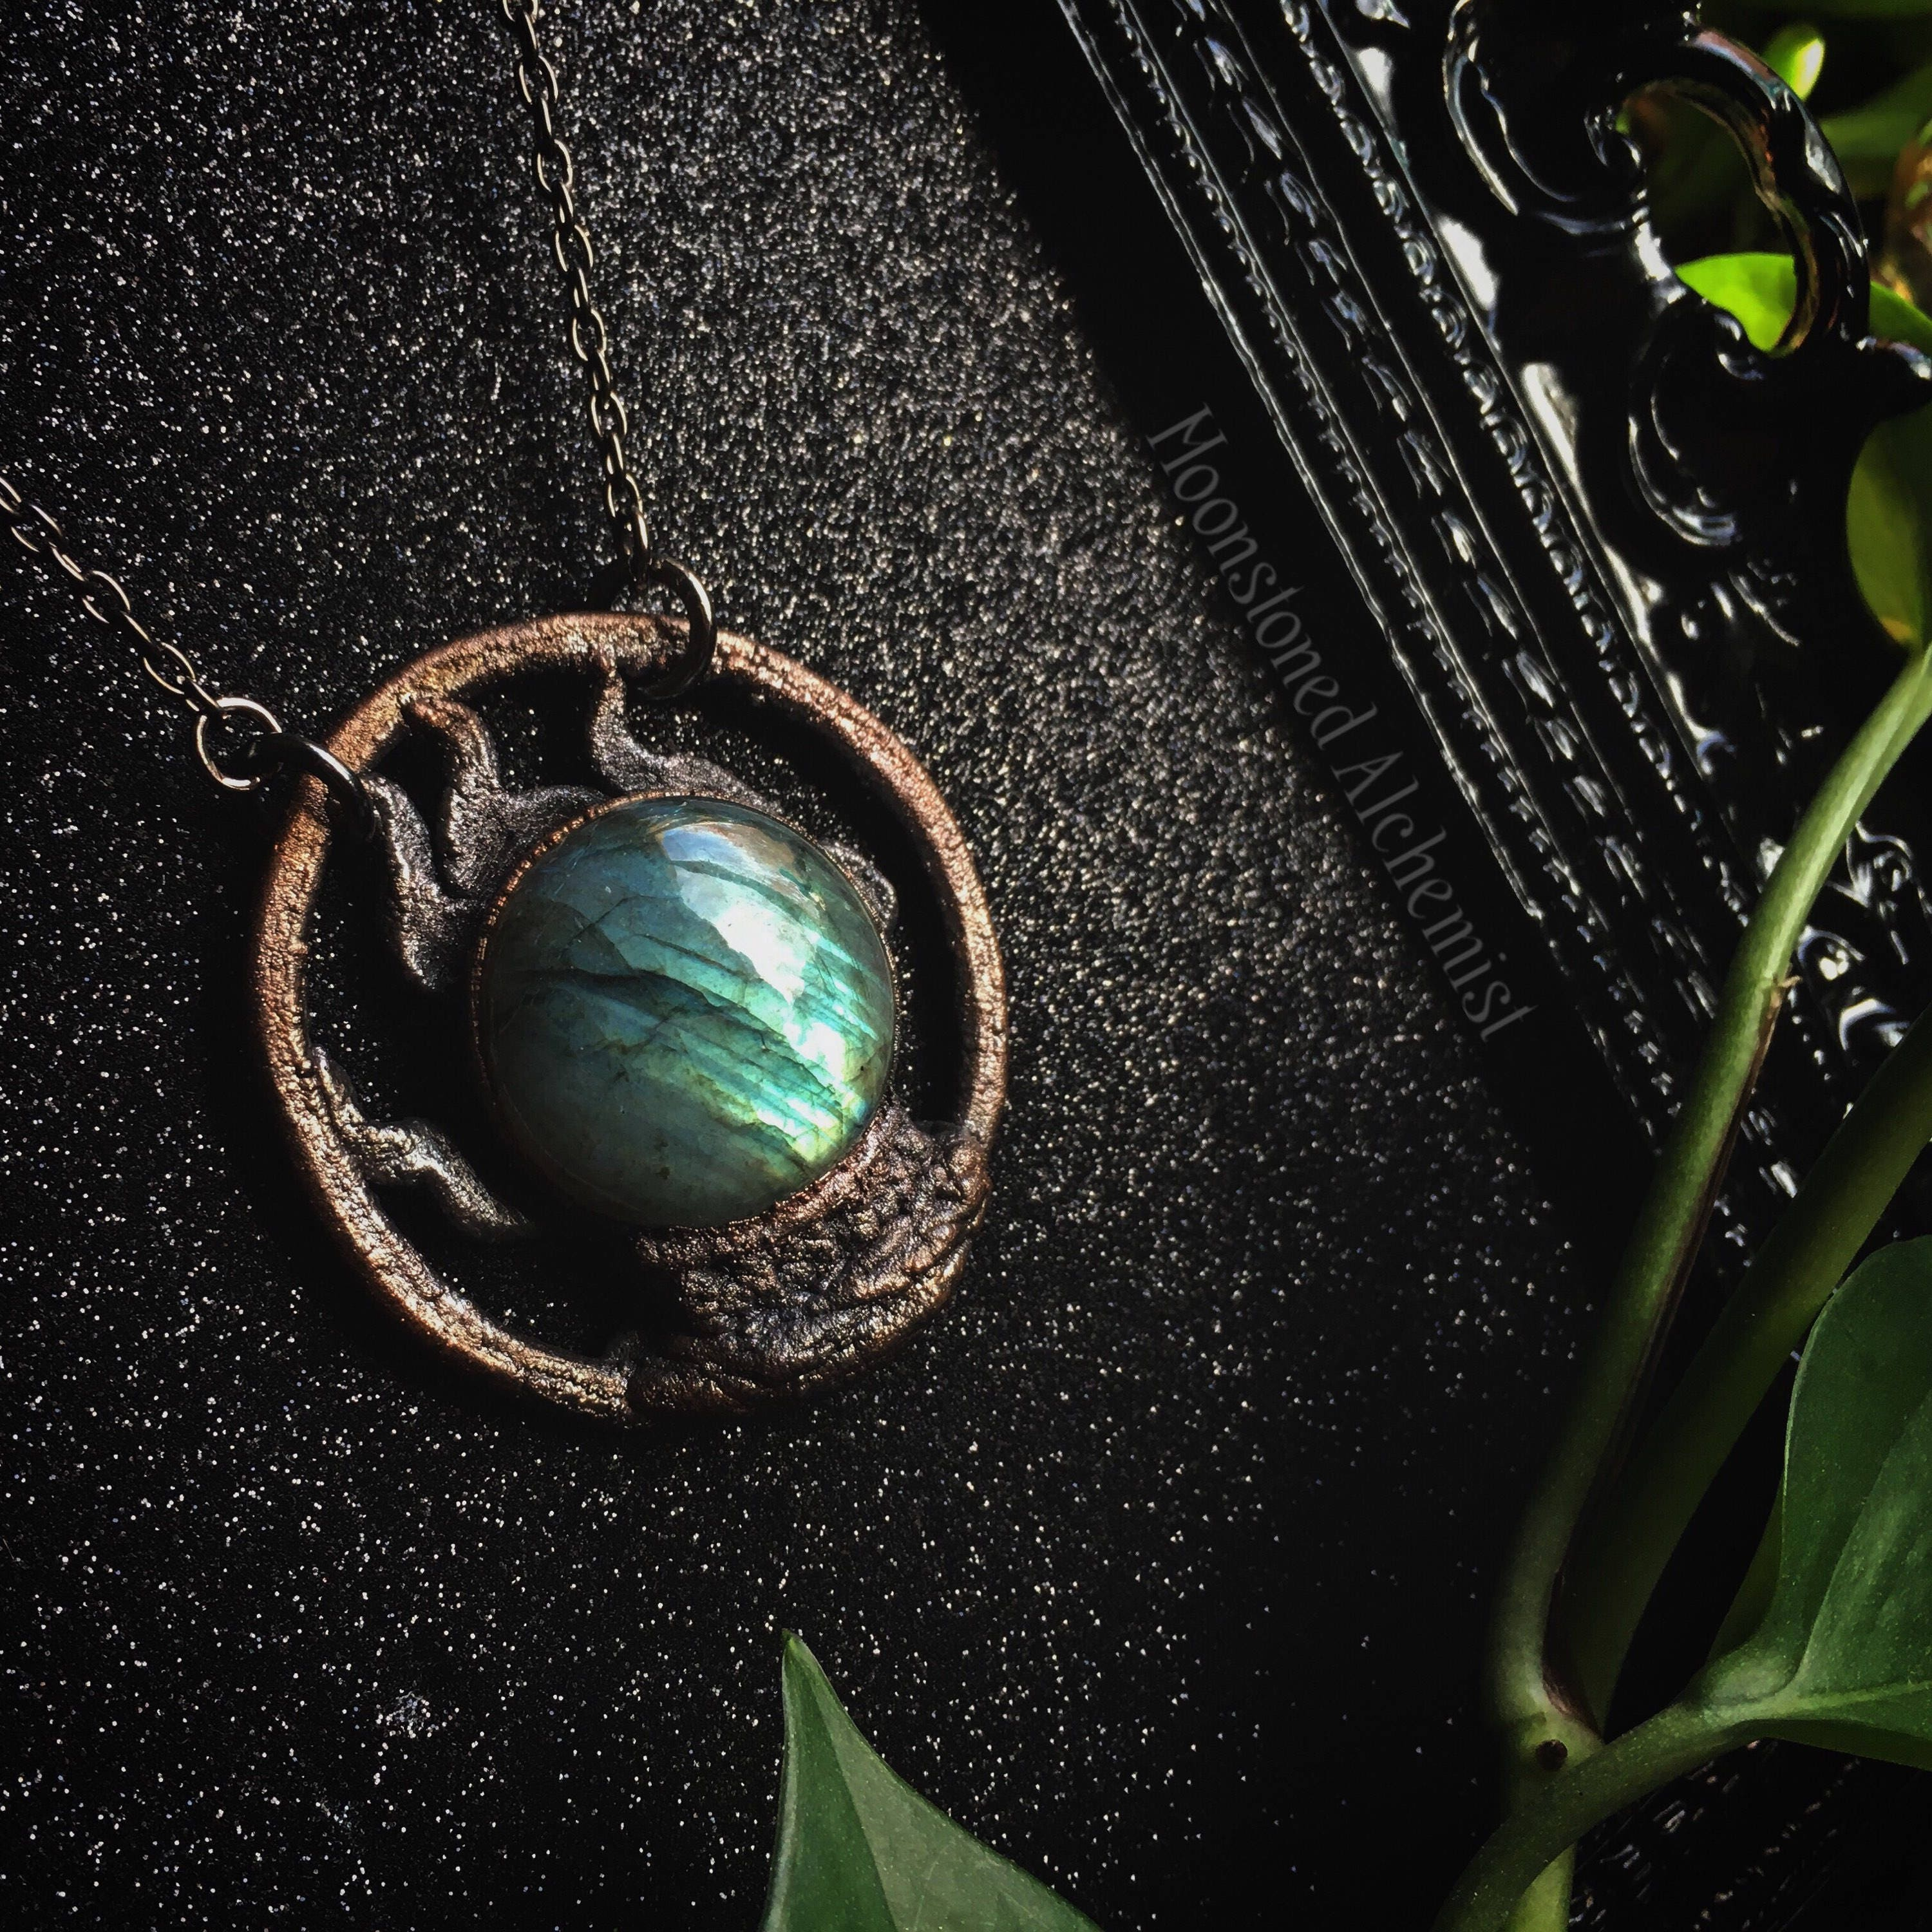 Labradorite crystal ball necklace fortune teller scrying necklace labradorite crystal ball necklace fortune teller scrying necklace dark copper and labradorite crystal necklace aloadofball Image collections